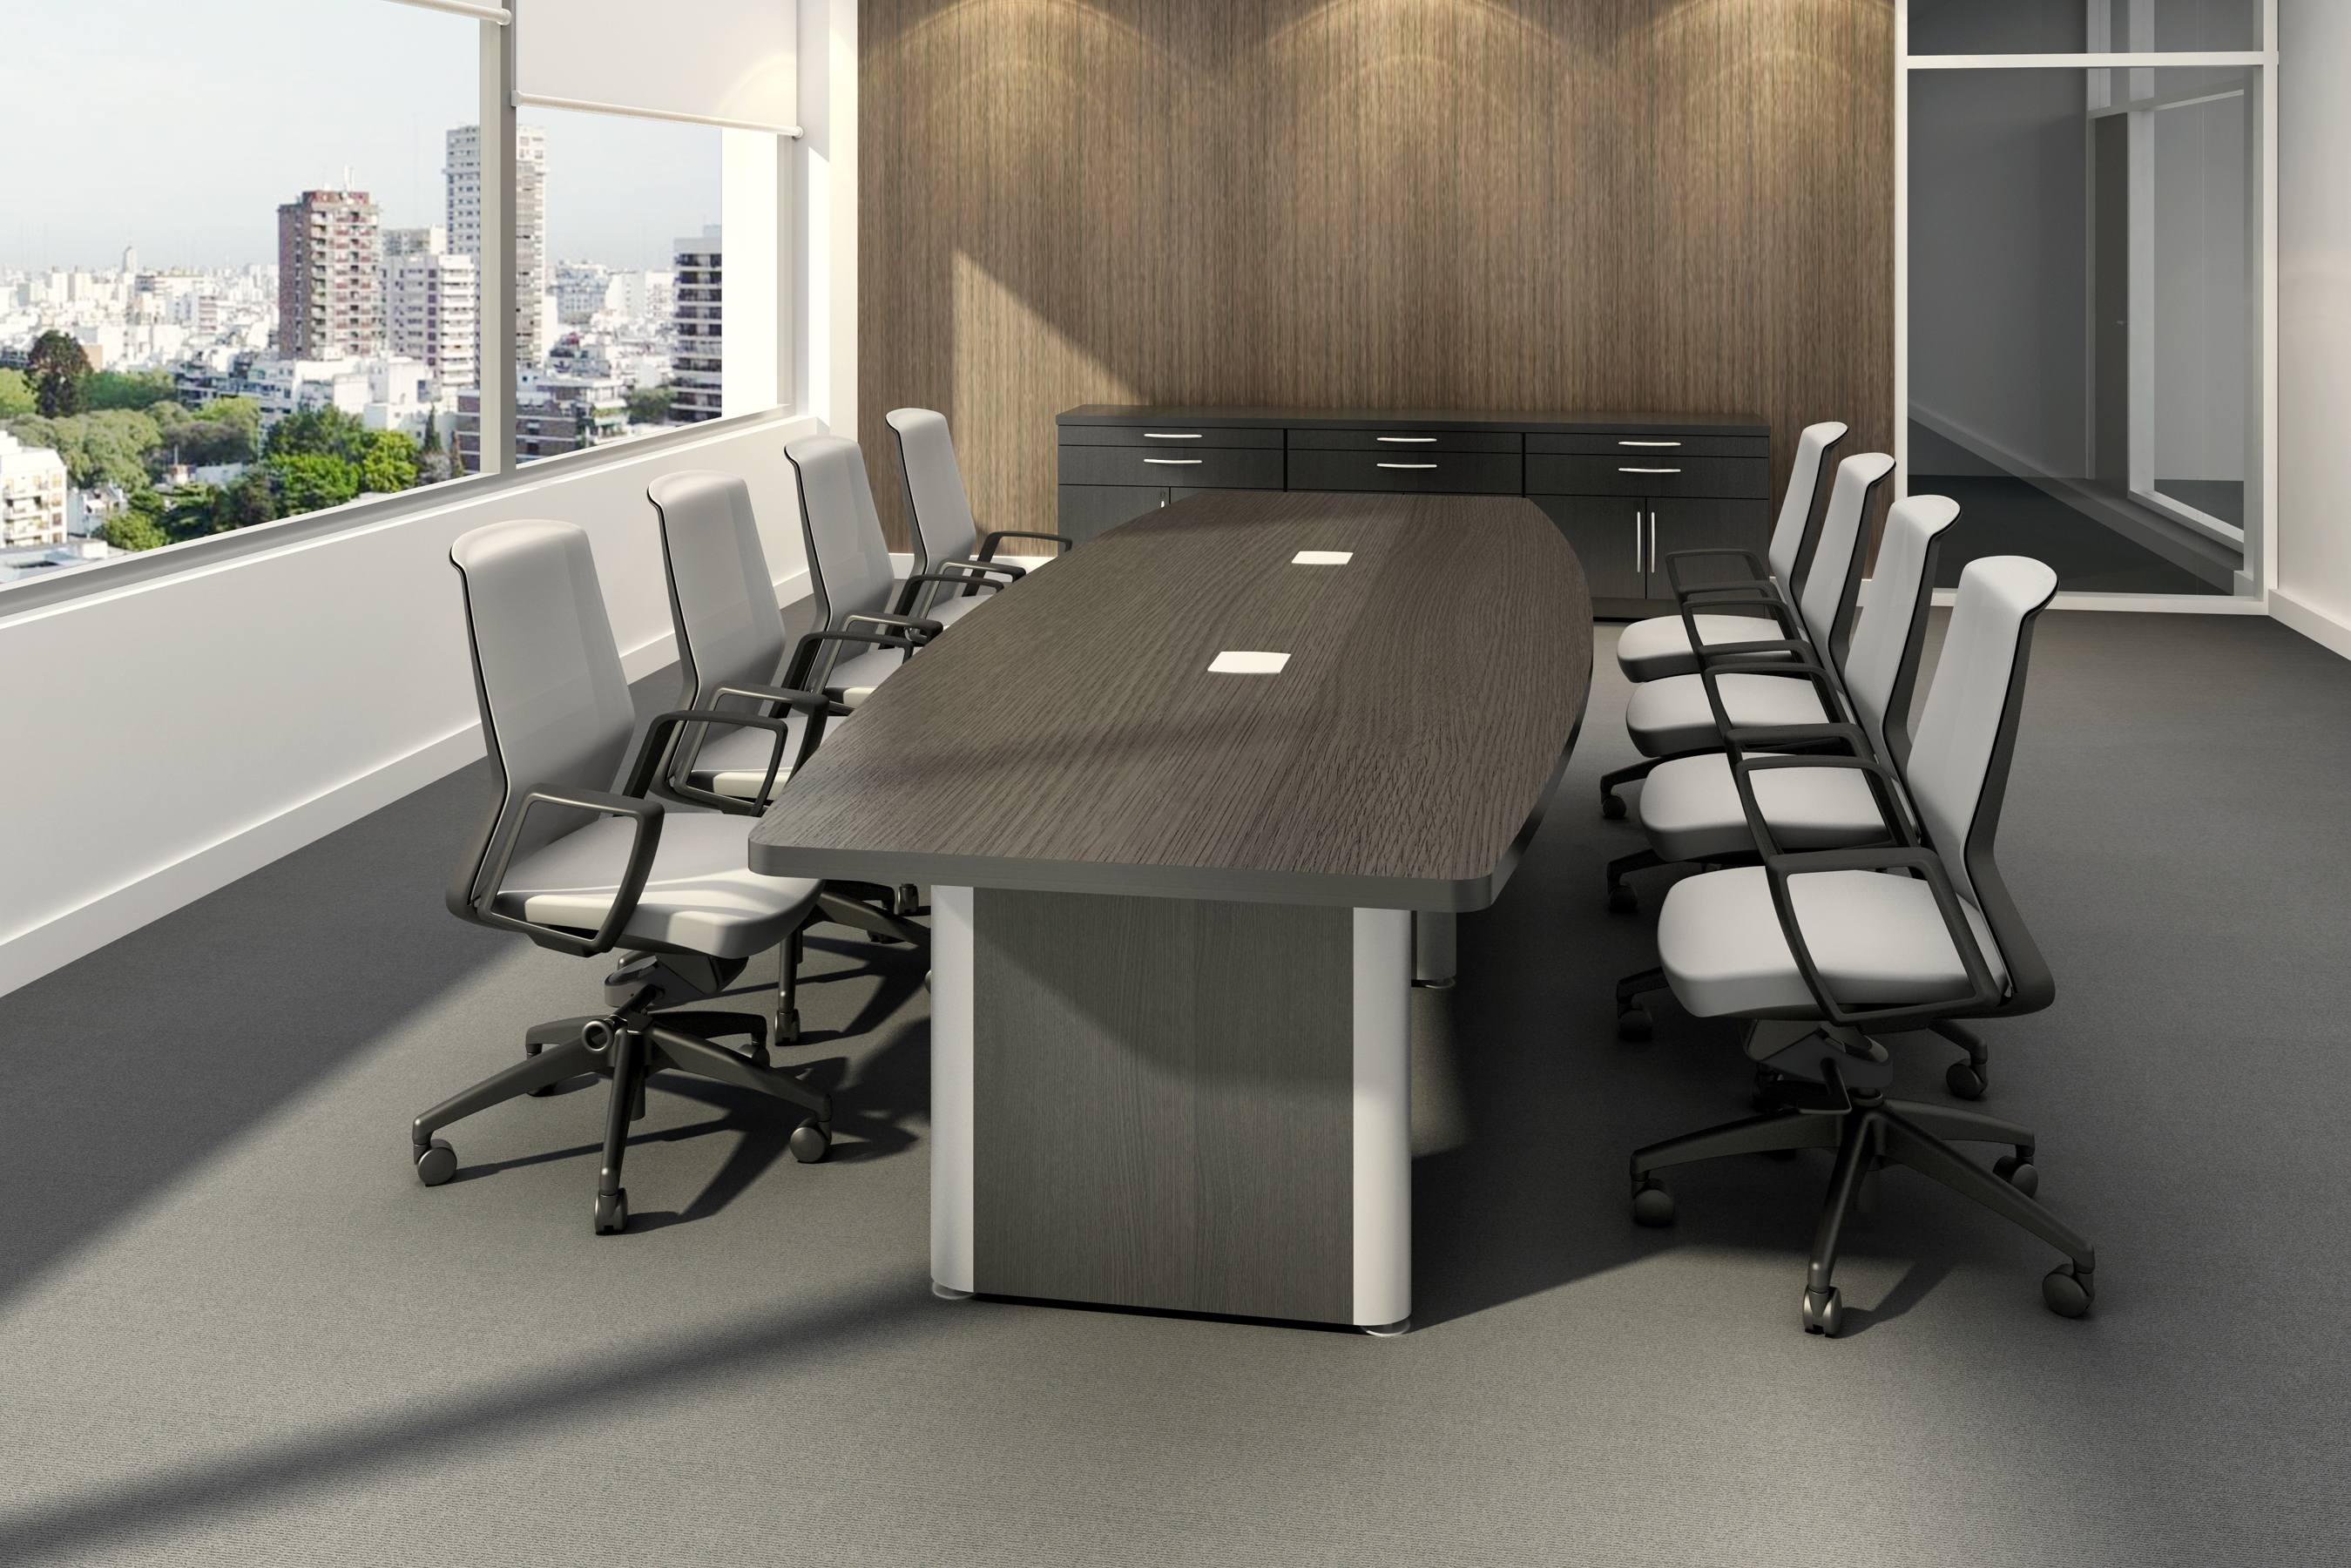 Boardroom furniture: